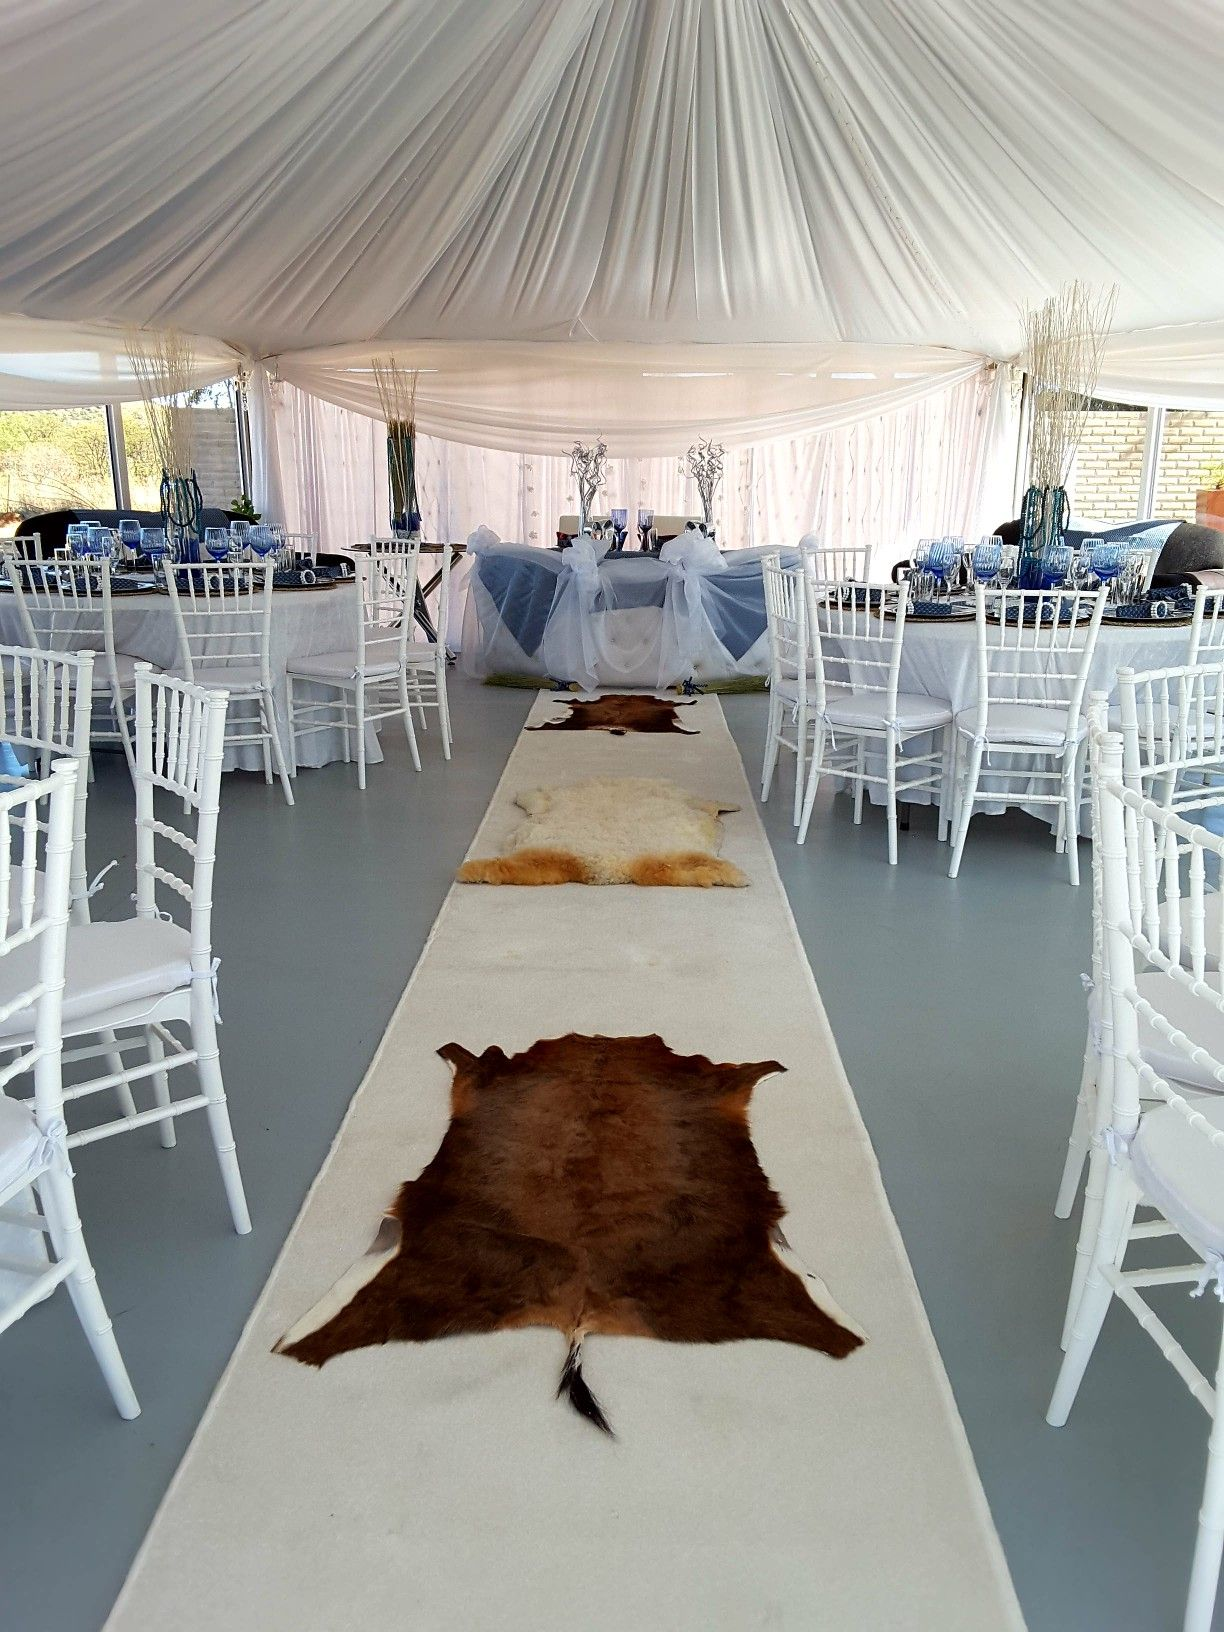 Tshivenda traditional wedding decor  Nchoba Thabo nchobathabo on Pinterest